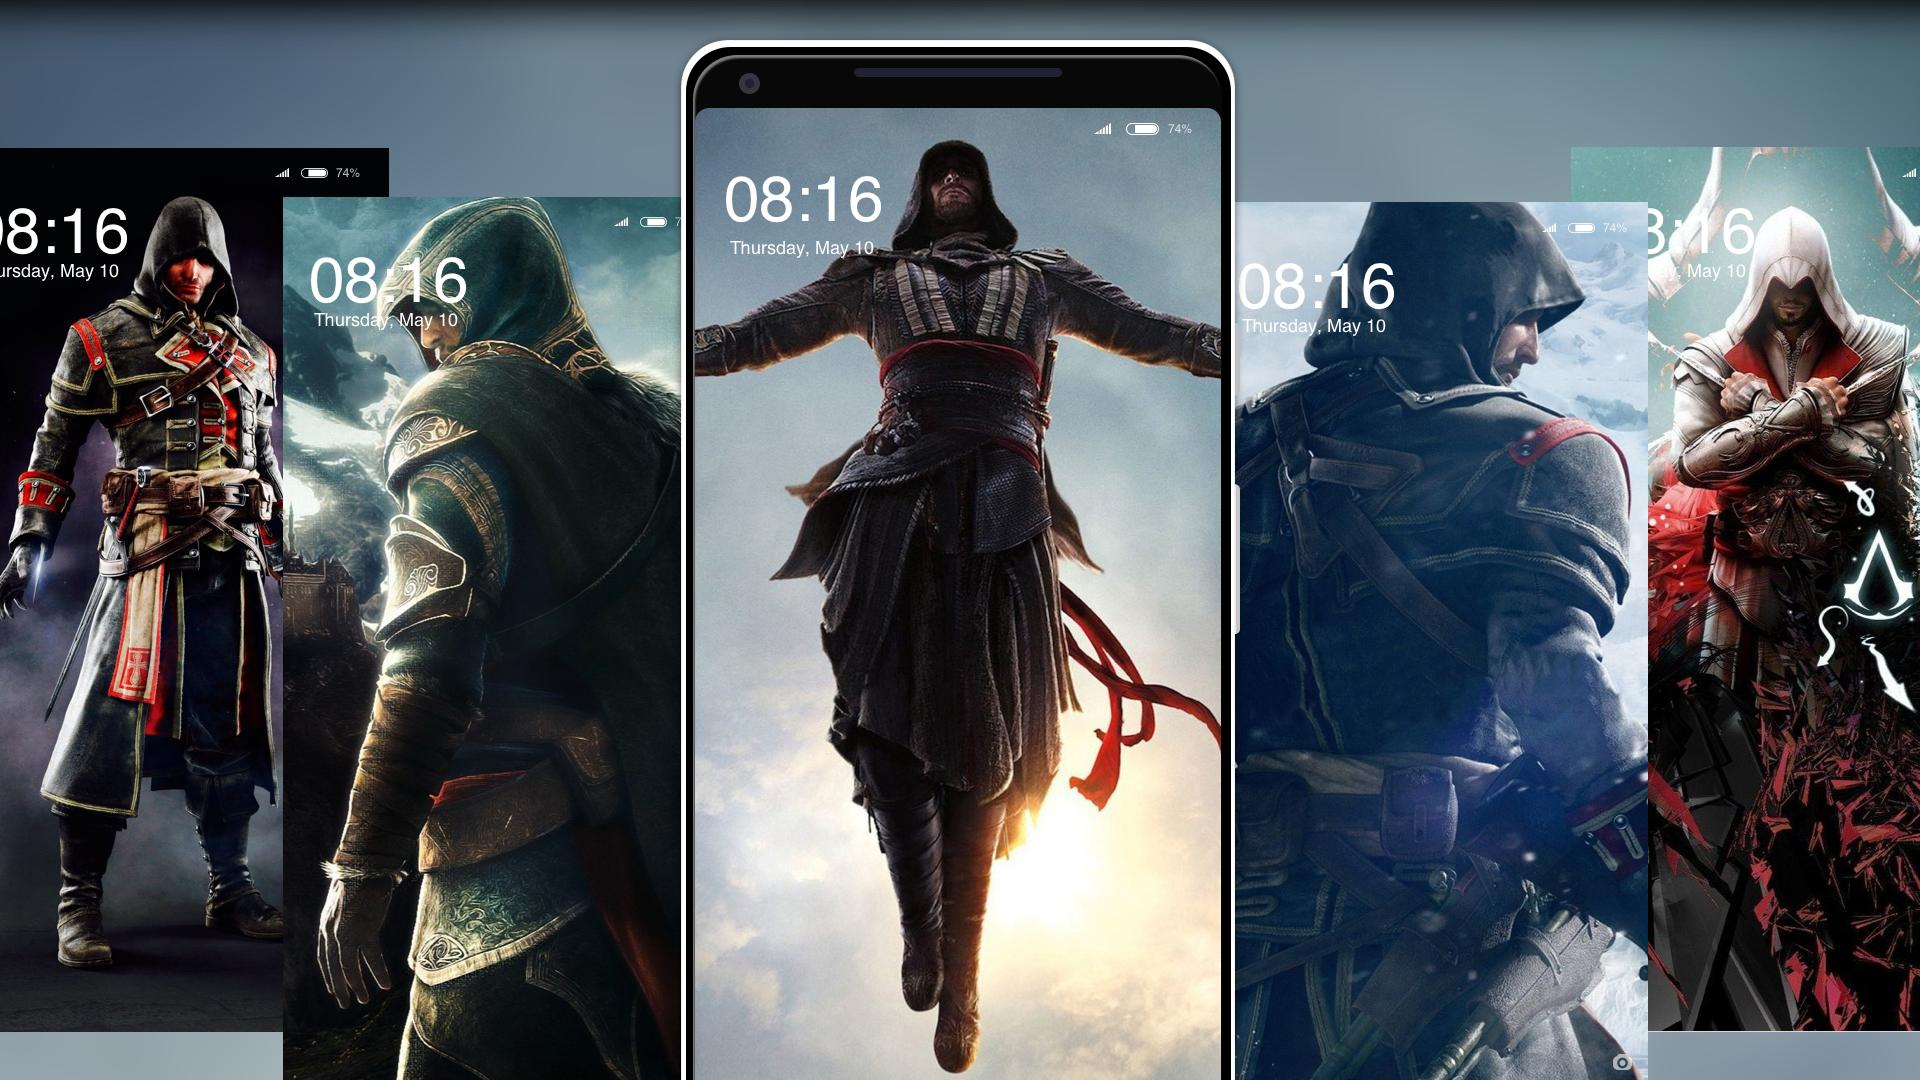 Assassin's creed wallpapers for fans for android apk download.